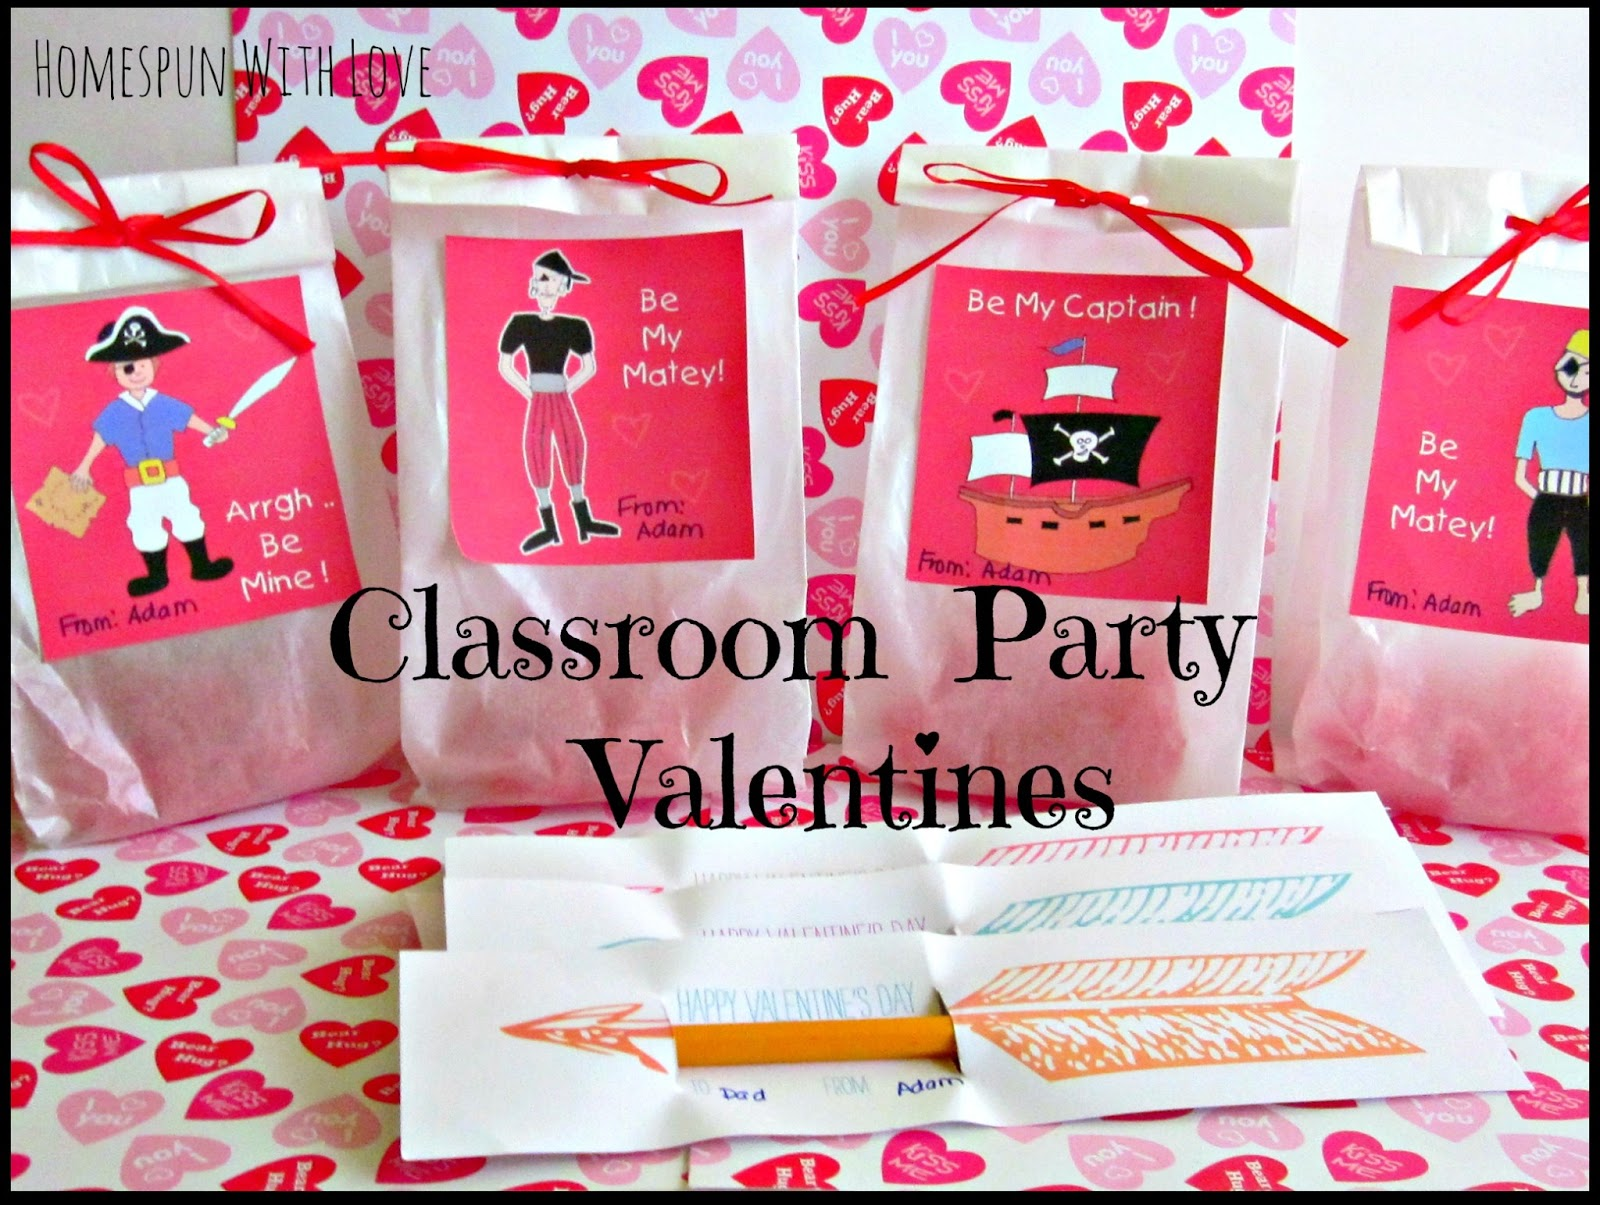 Classroom Party Ideas ~ Homespun with love classroom party valentines free